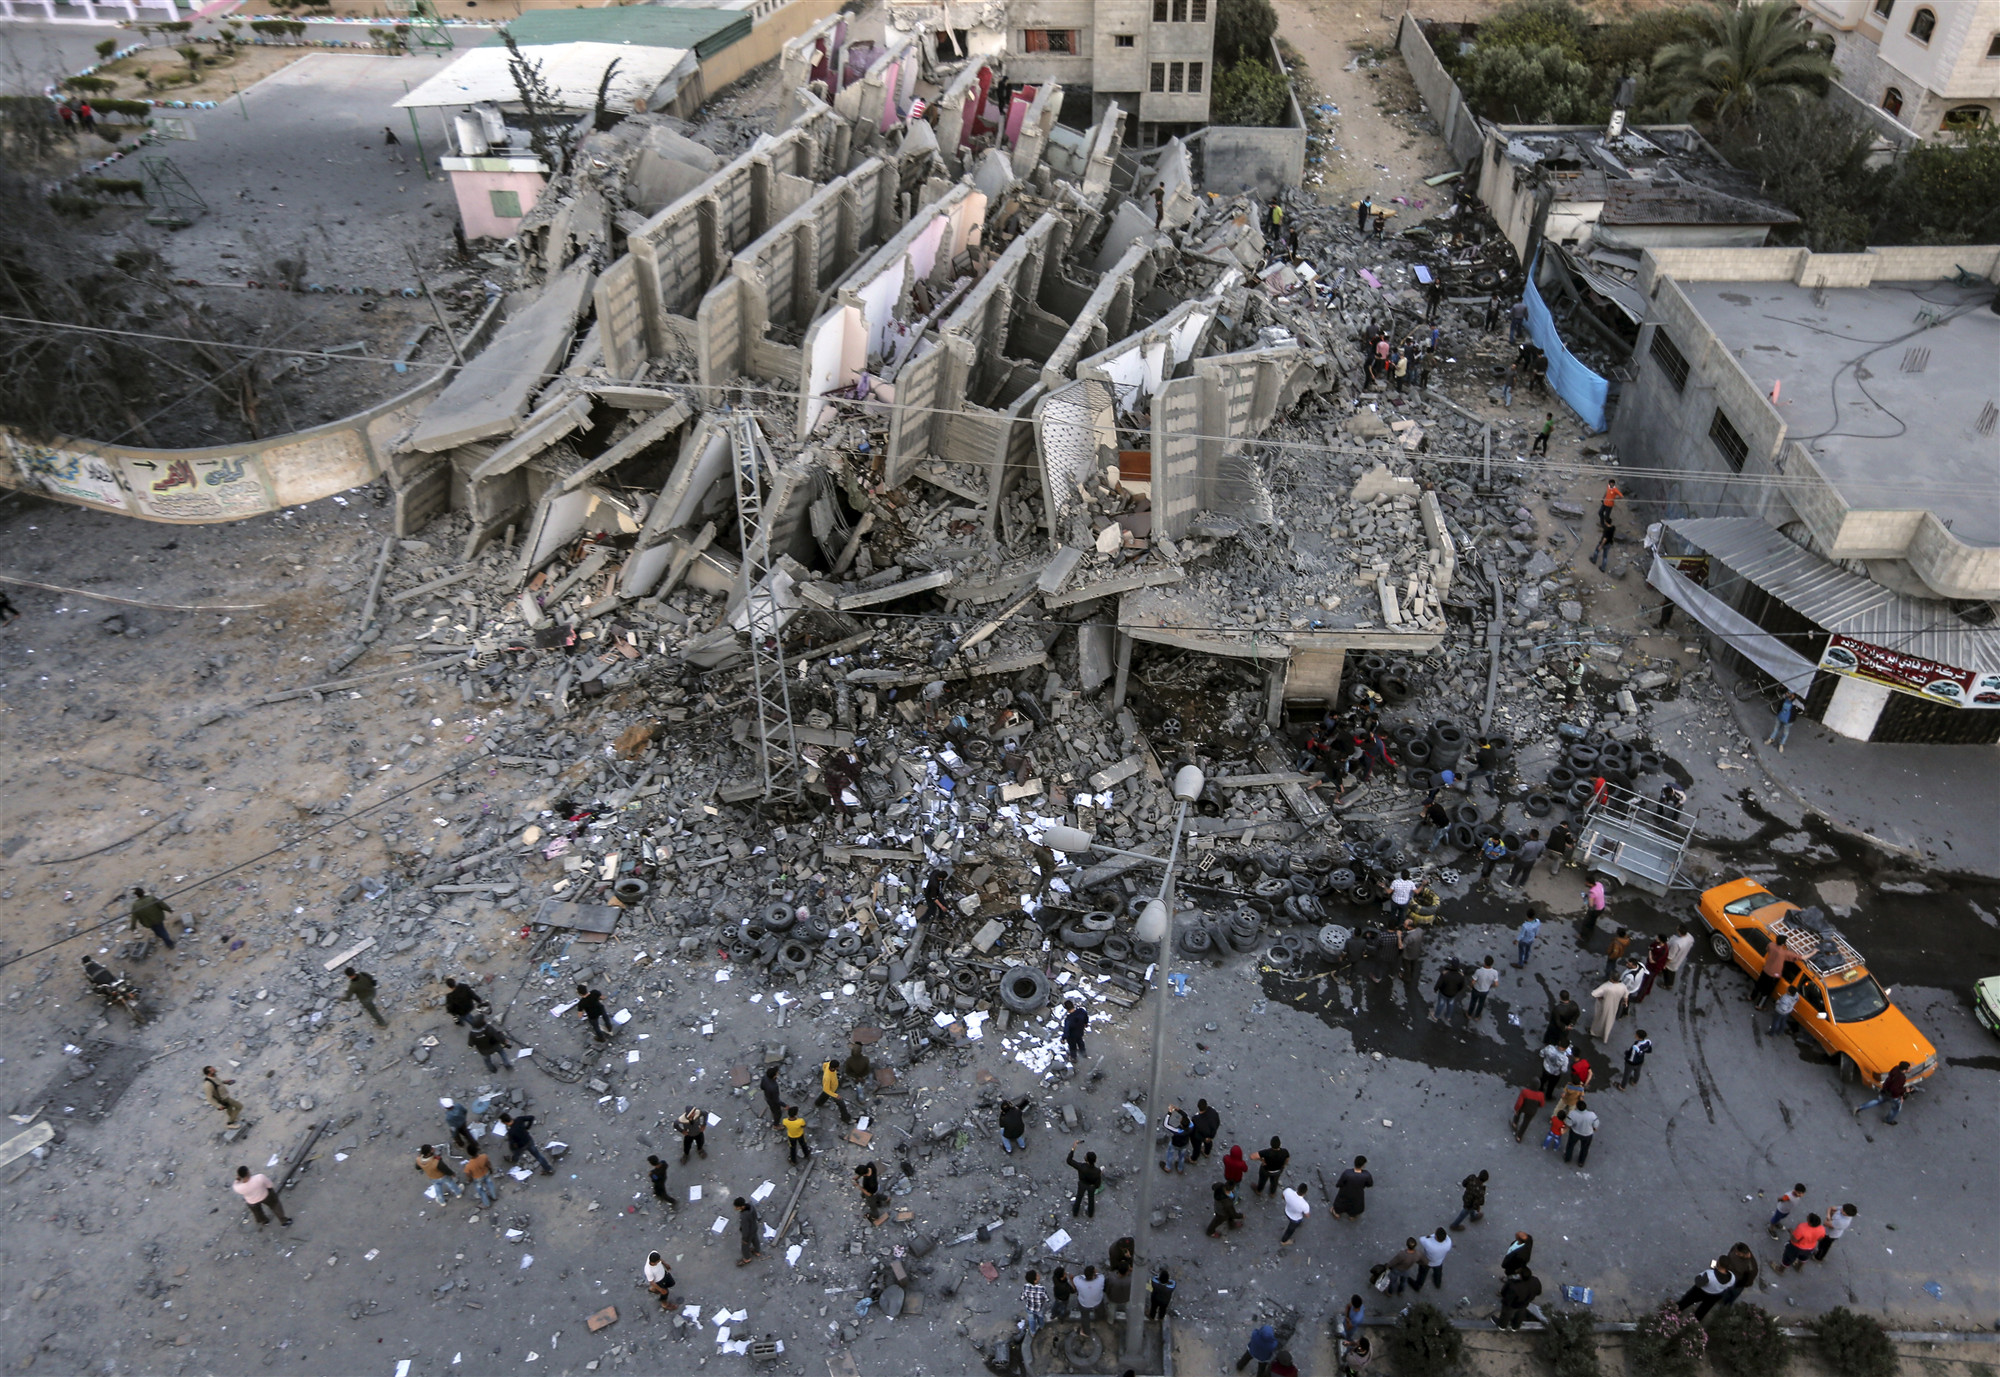 Israel, Hamas reach cease-fire agreement after 3 days of tensions